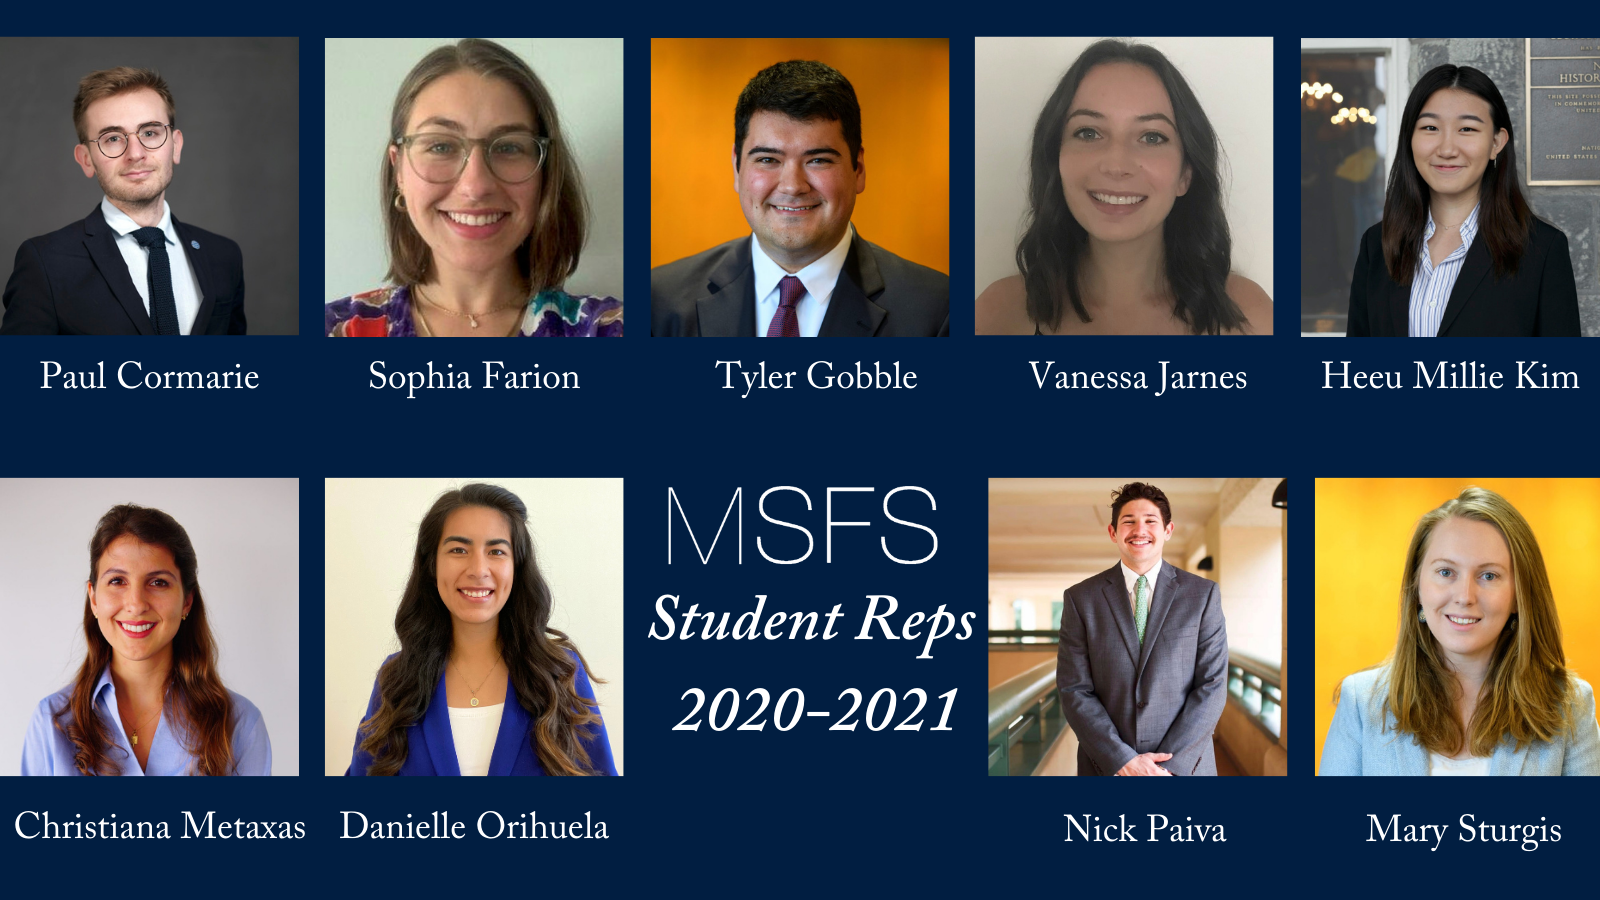 Headshot of the MSFS student representatives with the title